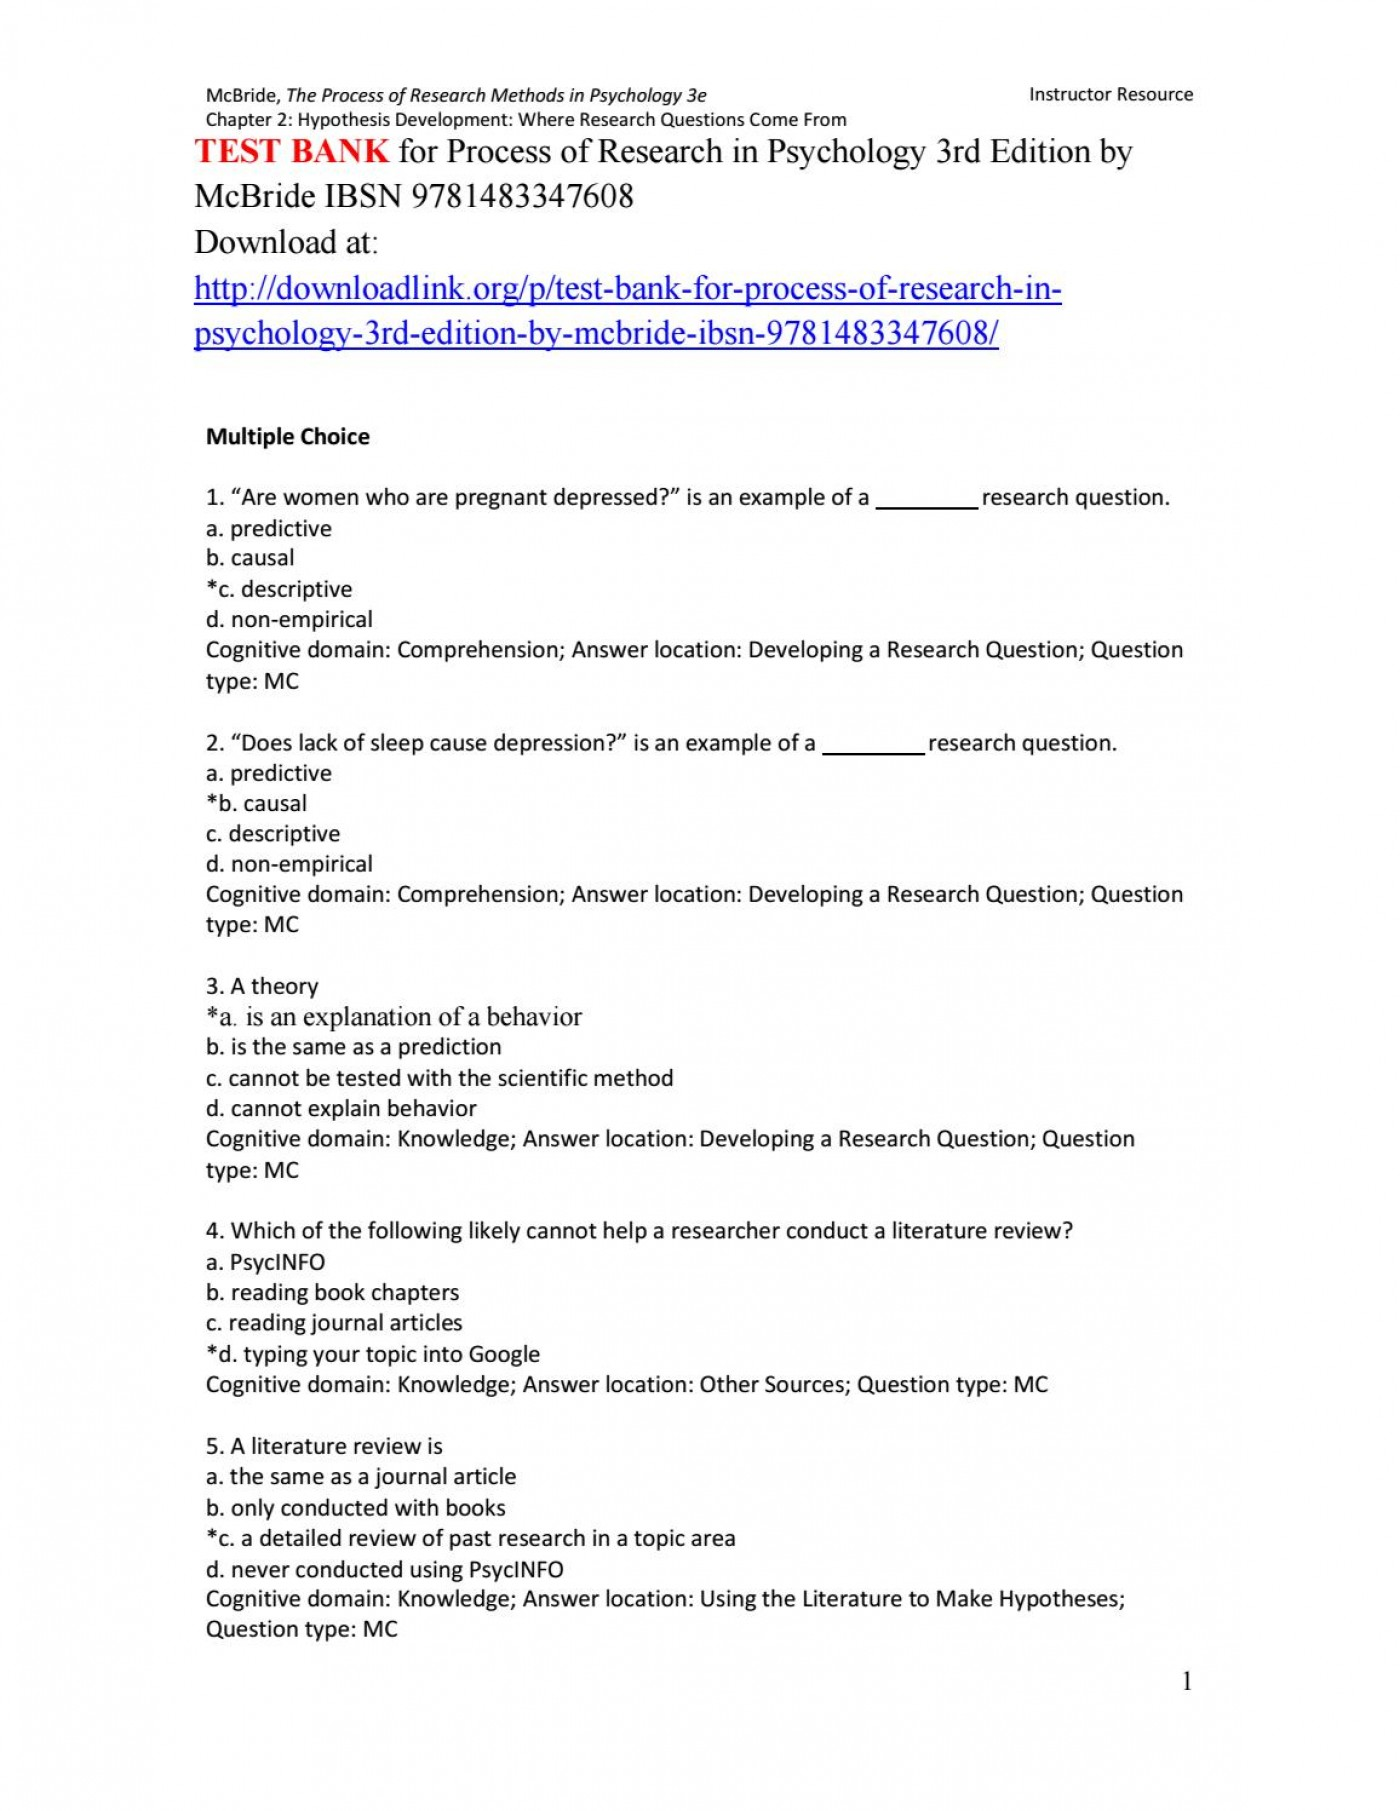 007 Research Paper Psychology On Depression Page 1 Wondrous Topics 1400